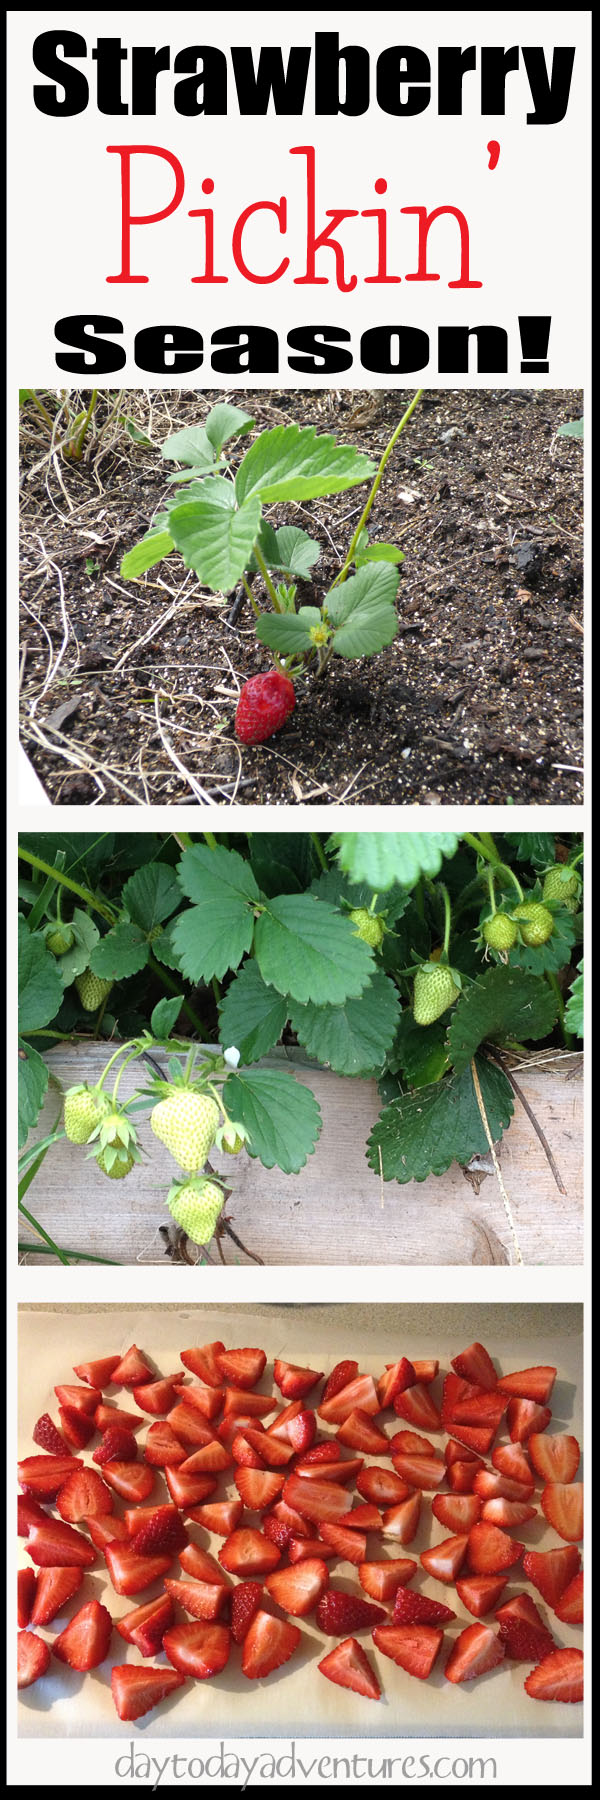 It's strawberry picking season!  Red ripe berries ready to freeze!  - DaytoDayAdventures.com